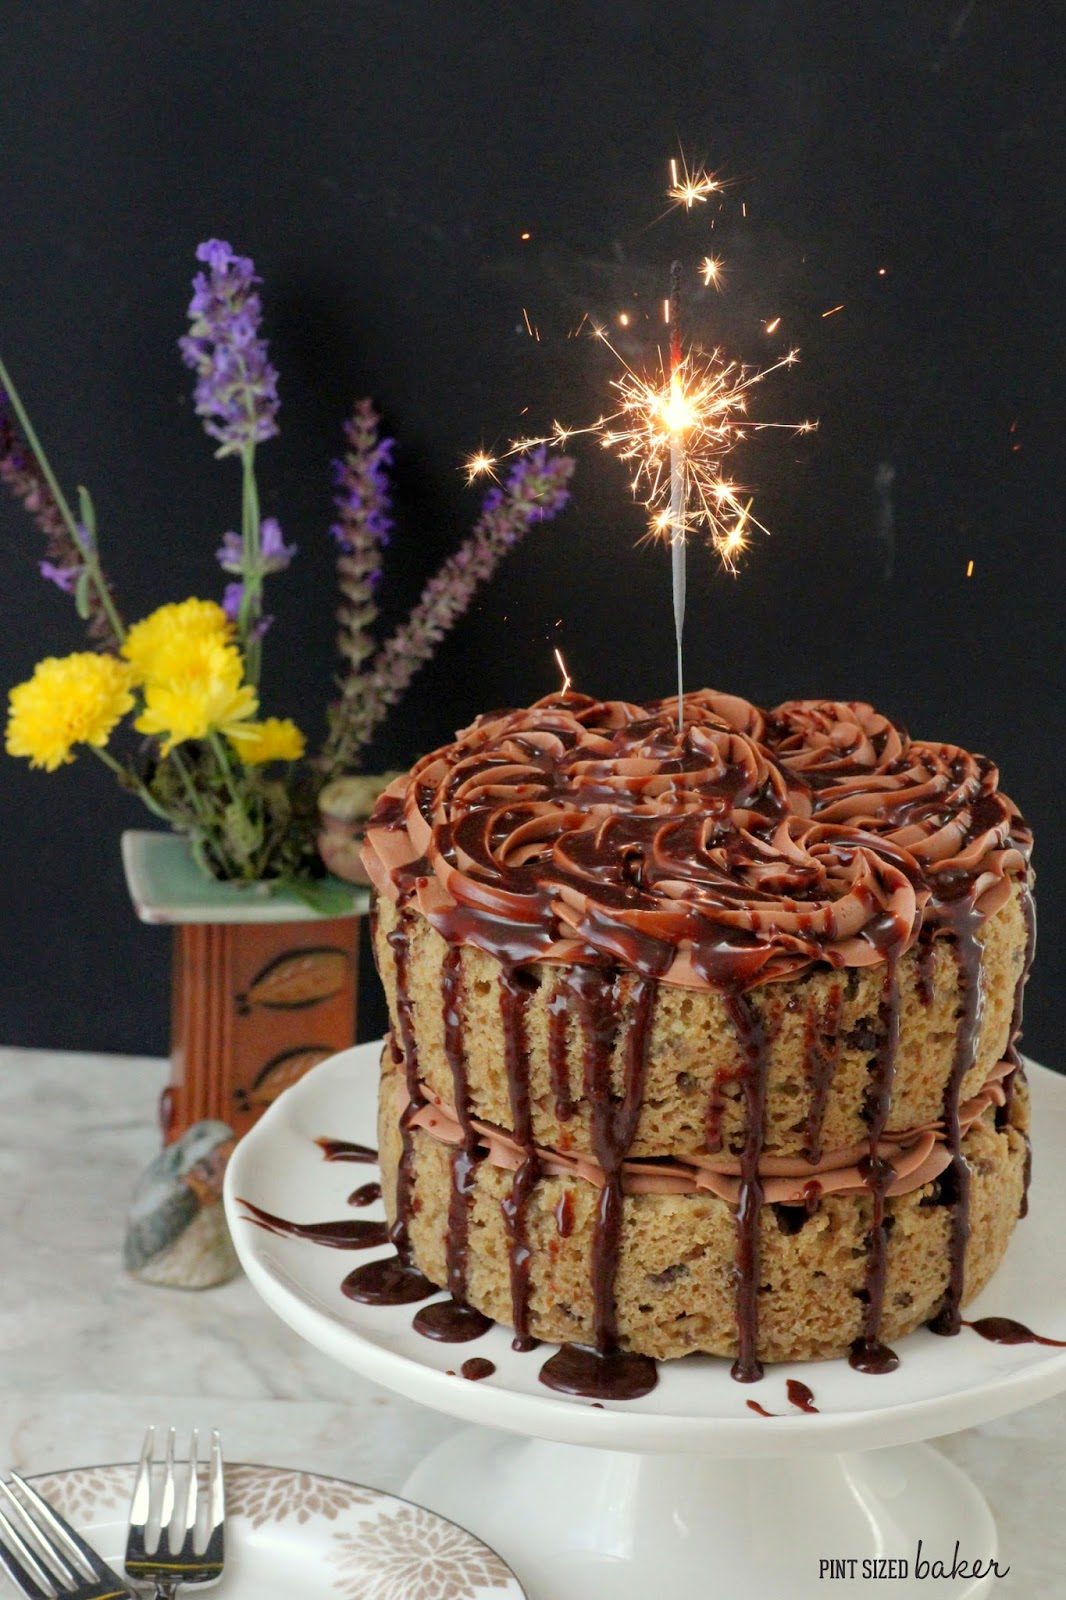 I loved this banana cake with chocolate hazelnut frosting. It was so delicious and full of flavor - perfect for my birthday cake.